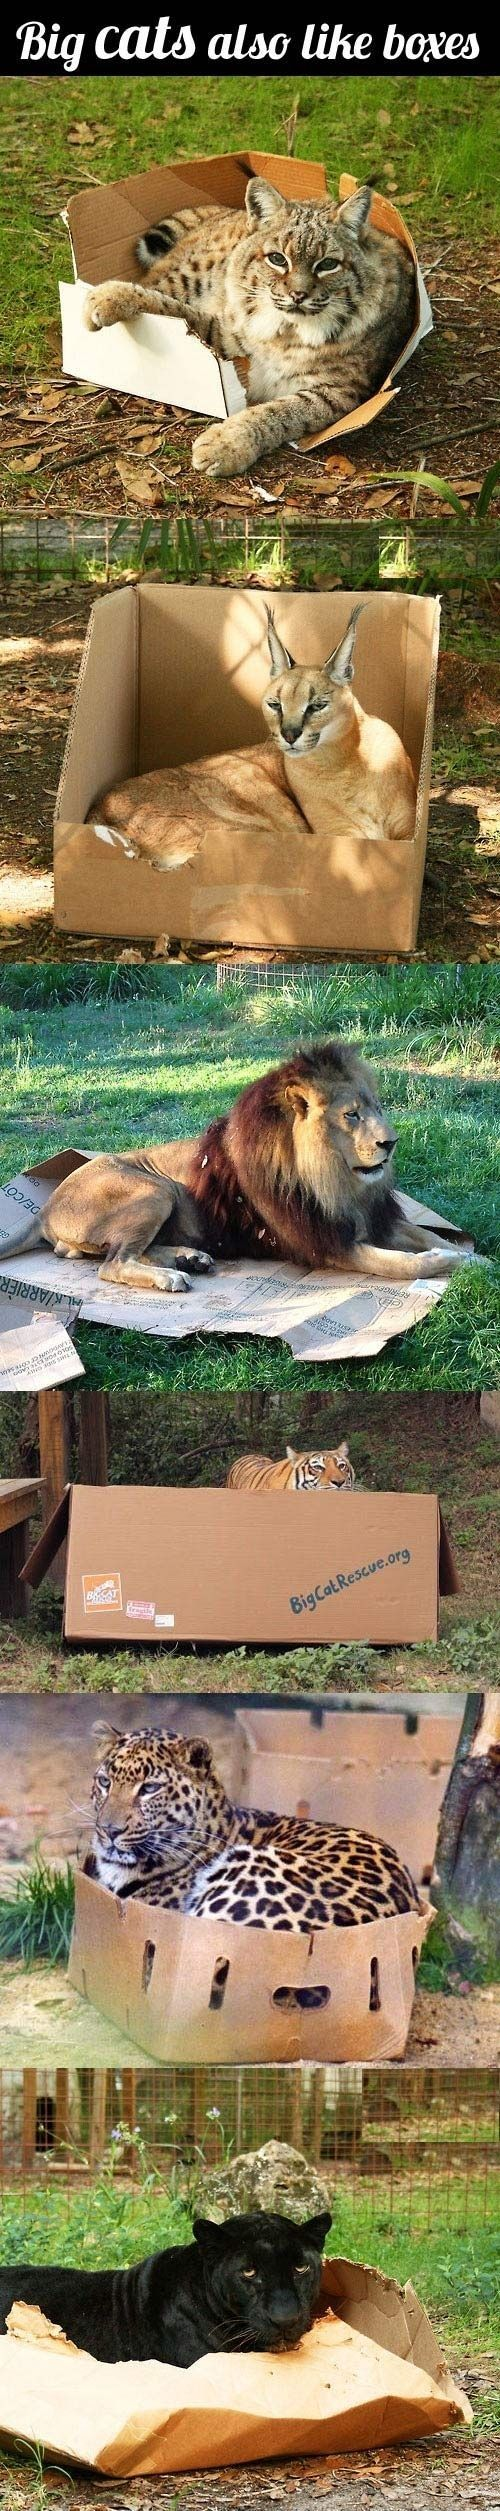 Big cats also like boxes.  It's in the genes.